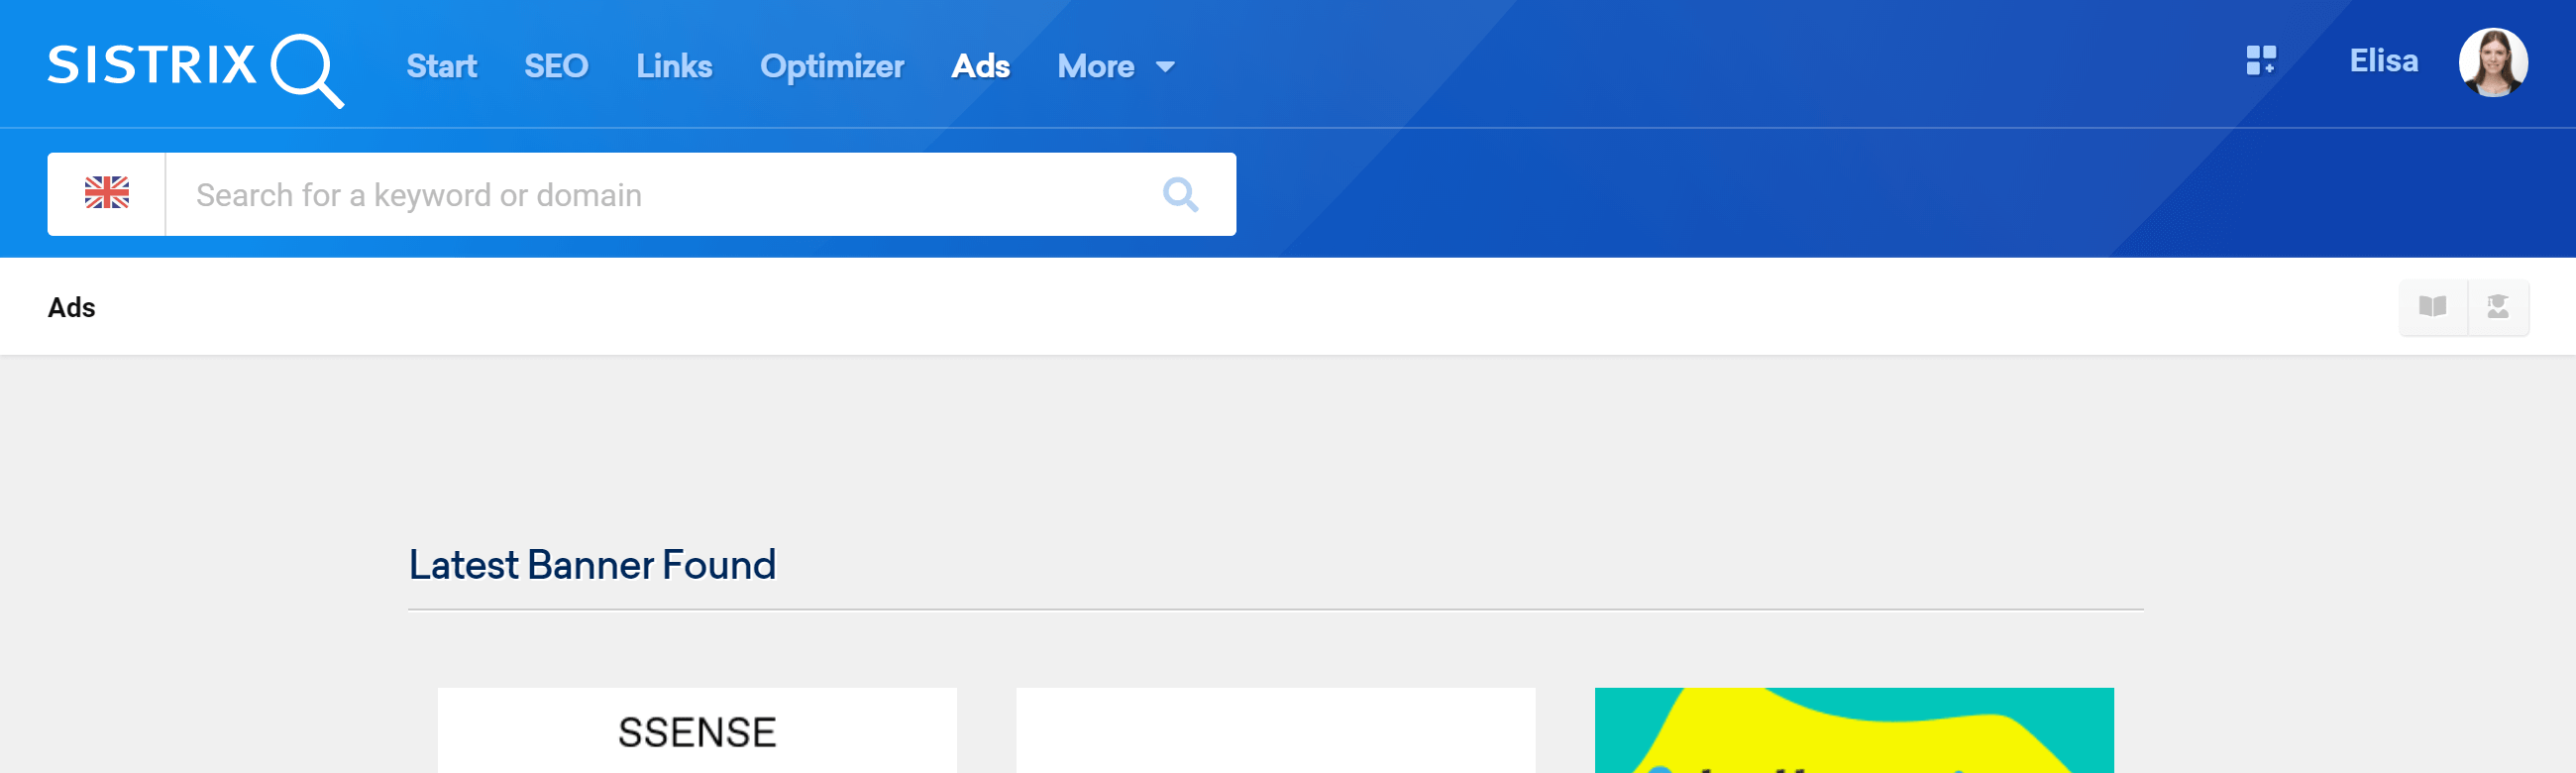 Startpage of the Ads Module